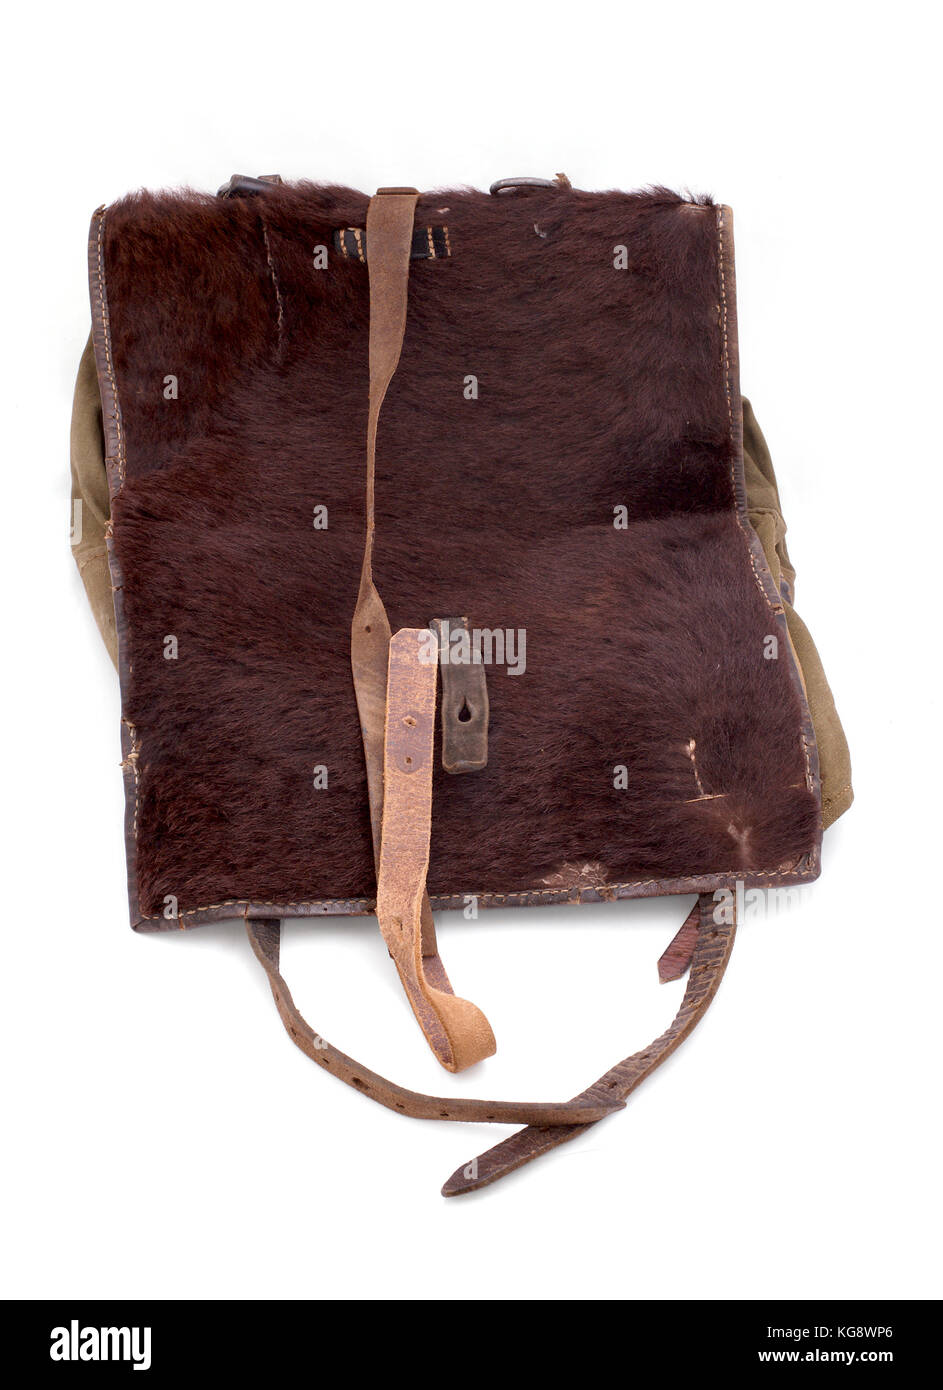 Germany at WW2 German marching soldier haversack (backpack). - Stock Image